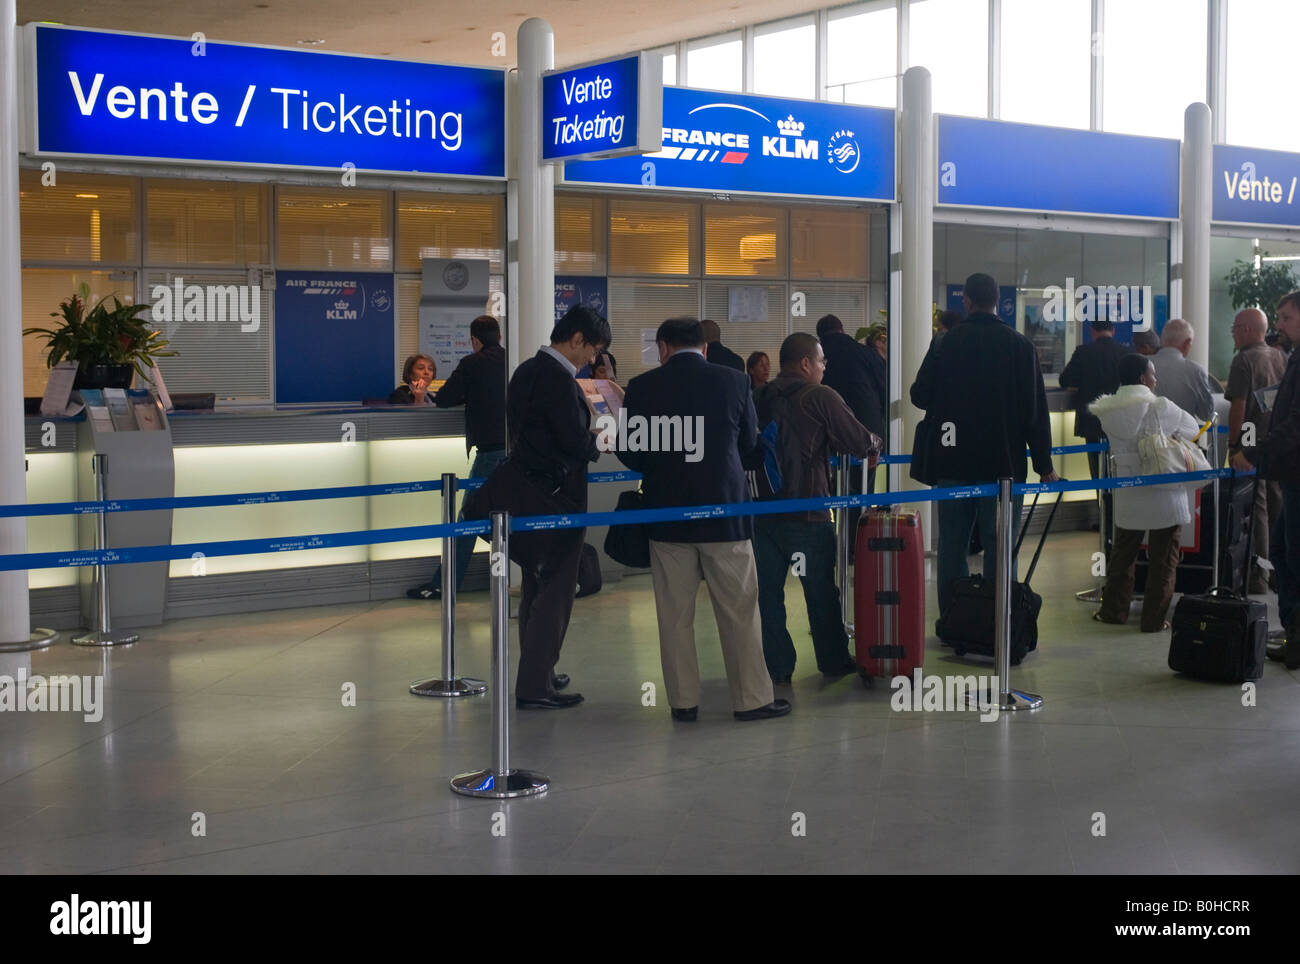 Ticketing, ticket counters, Charles de Gaulle International Airport, Paris, France, Europe - Stock Image